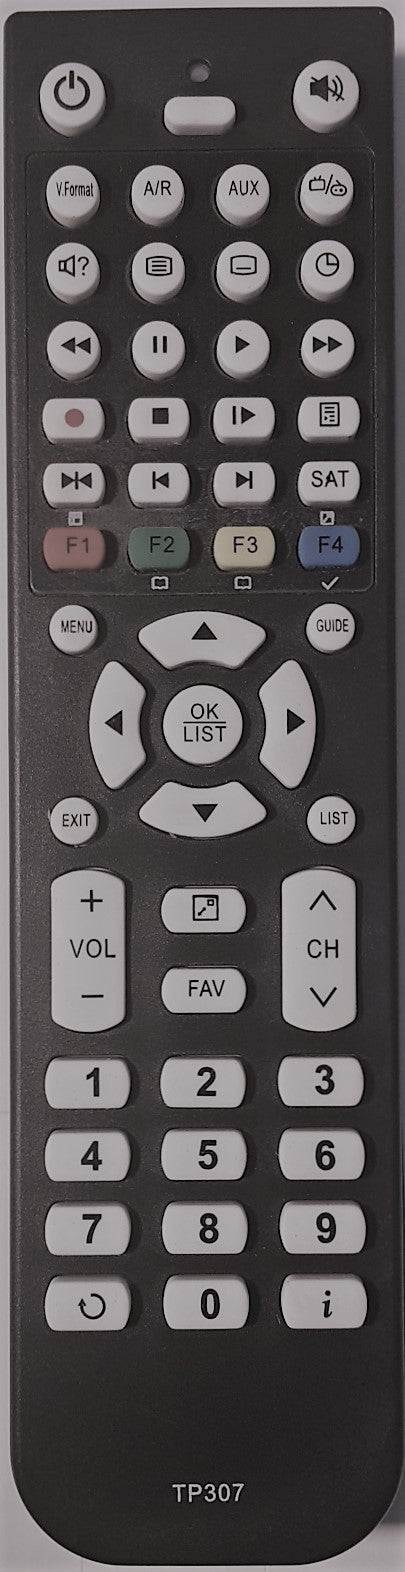 REPLACEMENT TOPFIELD REMOTE CONTROL TP307 -  TRF7160,  TF7100HDPVRT PLUS,  TF7100HDPLUS,  TRF7170, TRF-7260 PLUS, TPR5000, DVR PVR RECORDER - Remote Control Warehouse